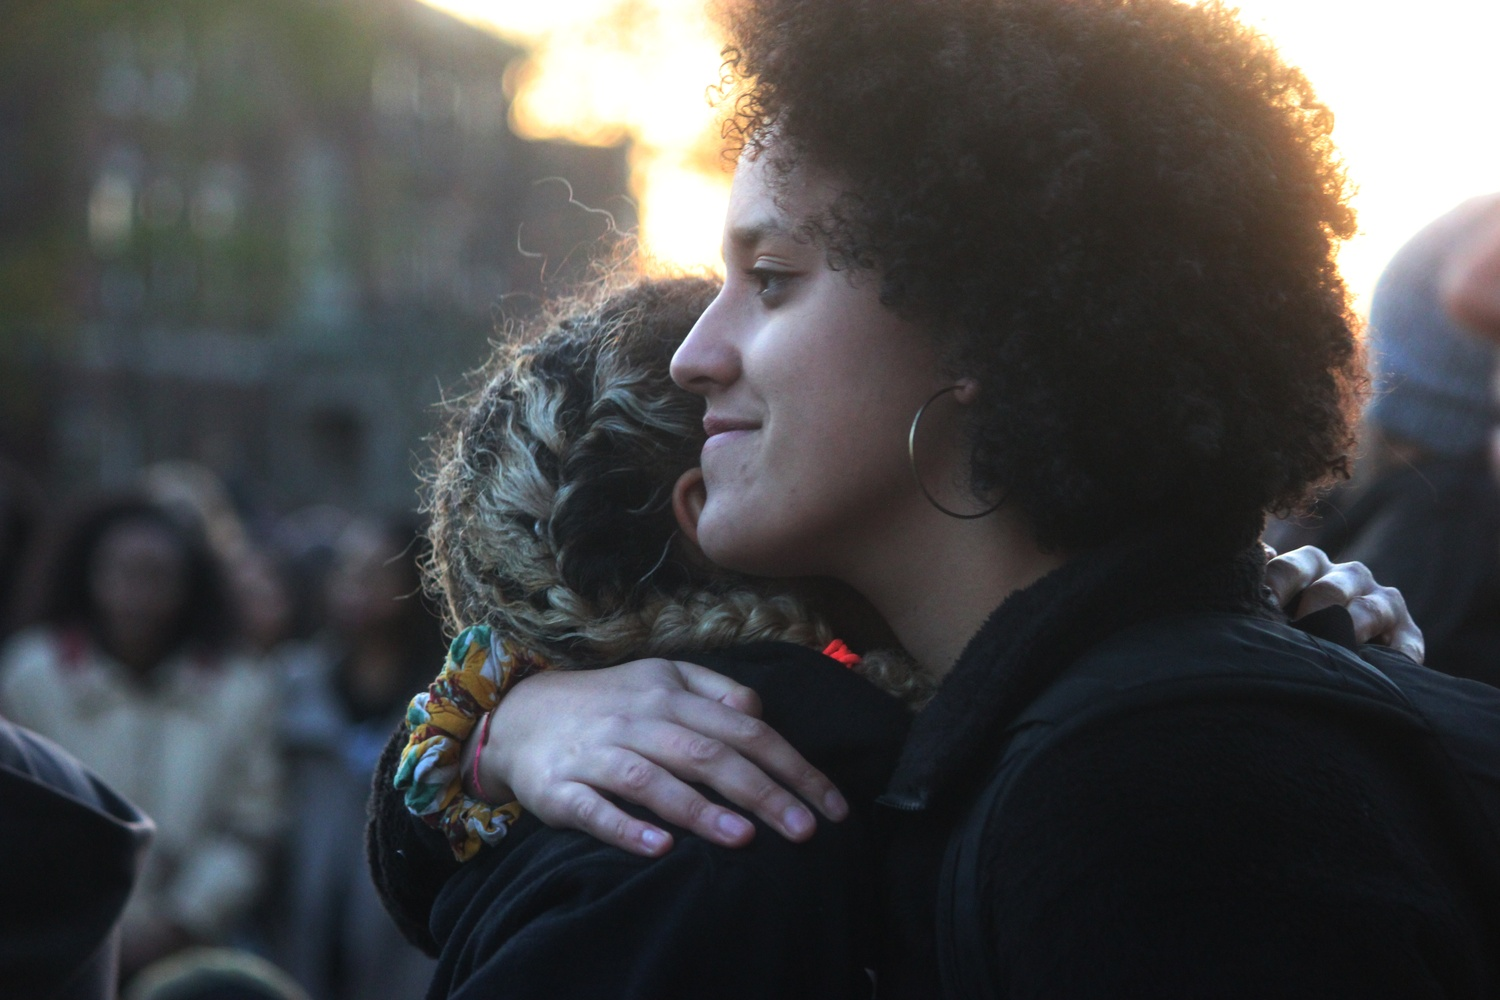 Kimiko M. Matsuda-Lawrence '16 and Jenny A. Gathright '16 embrace after performing a spoken-word poetry piece during a rally for National Call to Action Day. Members of the Harvard community gathered to march in solidarity with those who have been affected by recent incidents of racism and discrimination on college campuses.